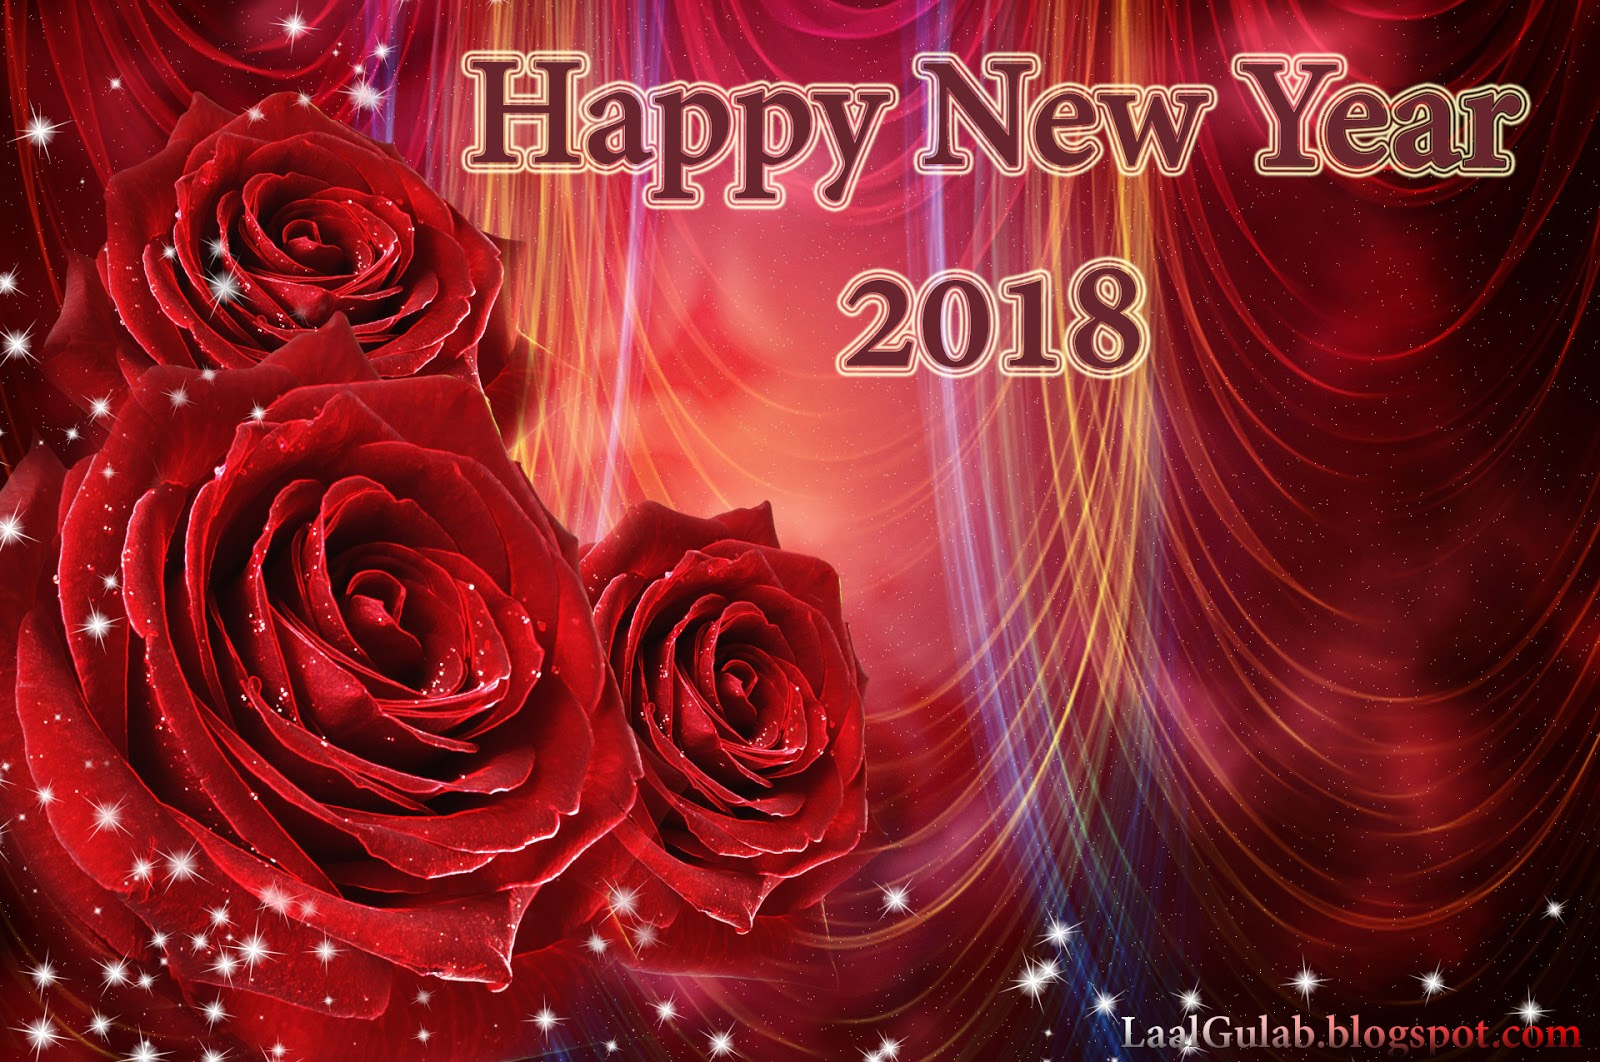 Islamic Happy New Year Wallpaper 2018 The Best Collection of Quotes